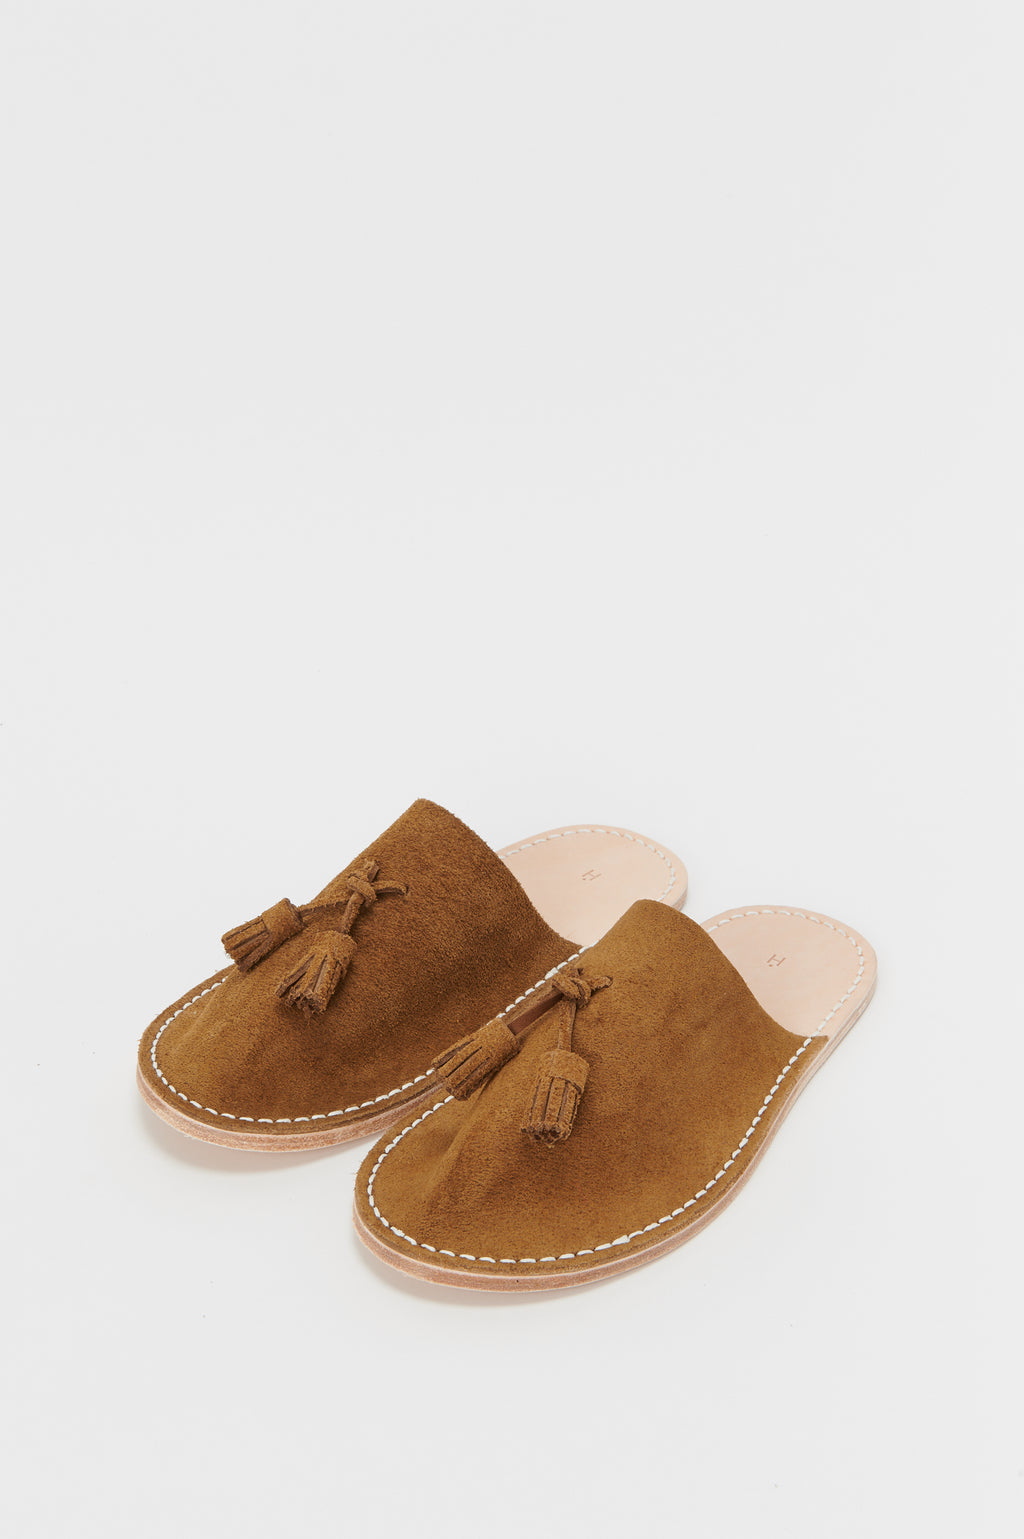 Coming Soon: Leather Slipper in Camel